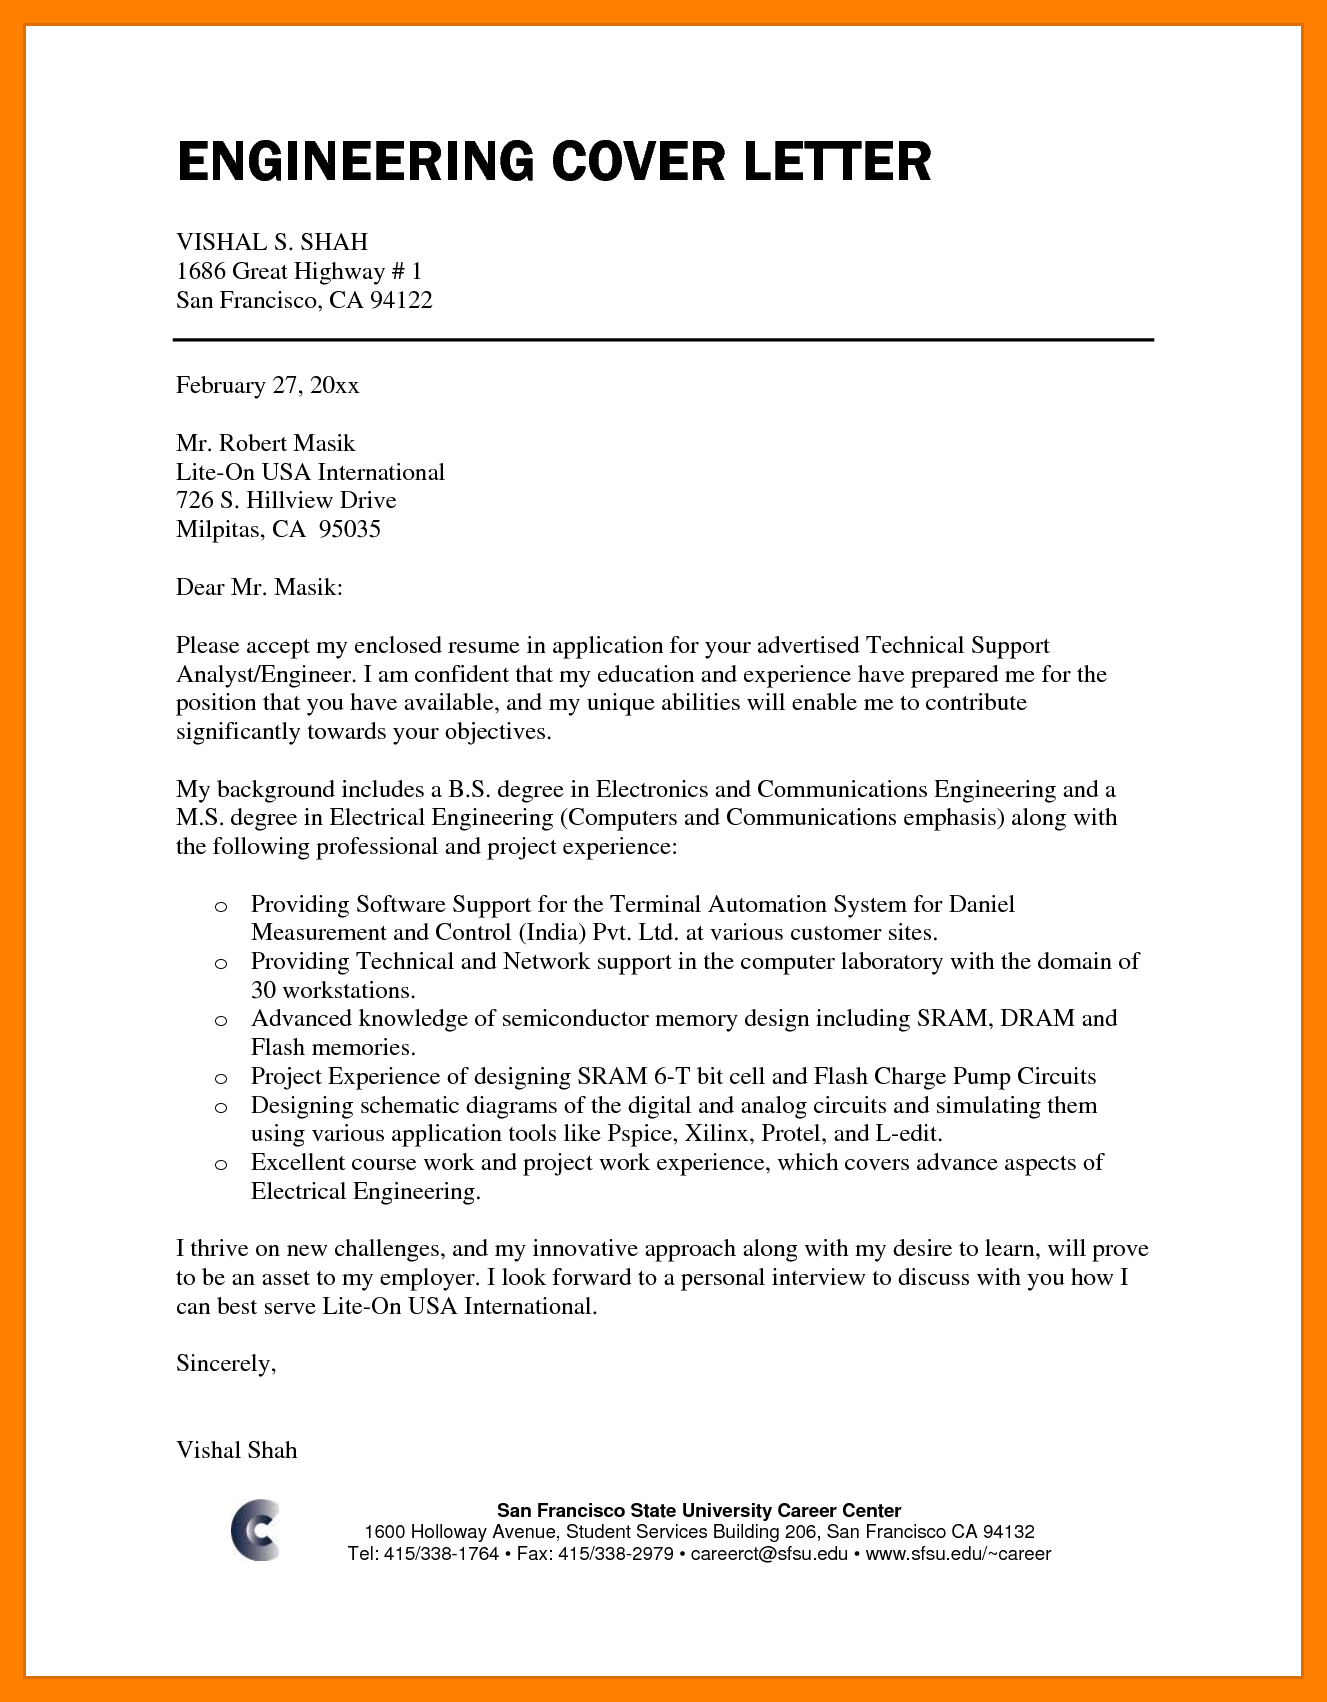 You Can Download For Full Letter Resume Template Here Http Newspb Org Motivation L Mechanical Engineering Jobs Engineering Jobs Electrical Engineering Jobs